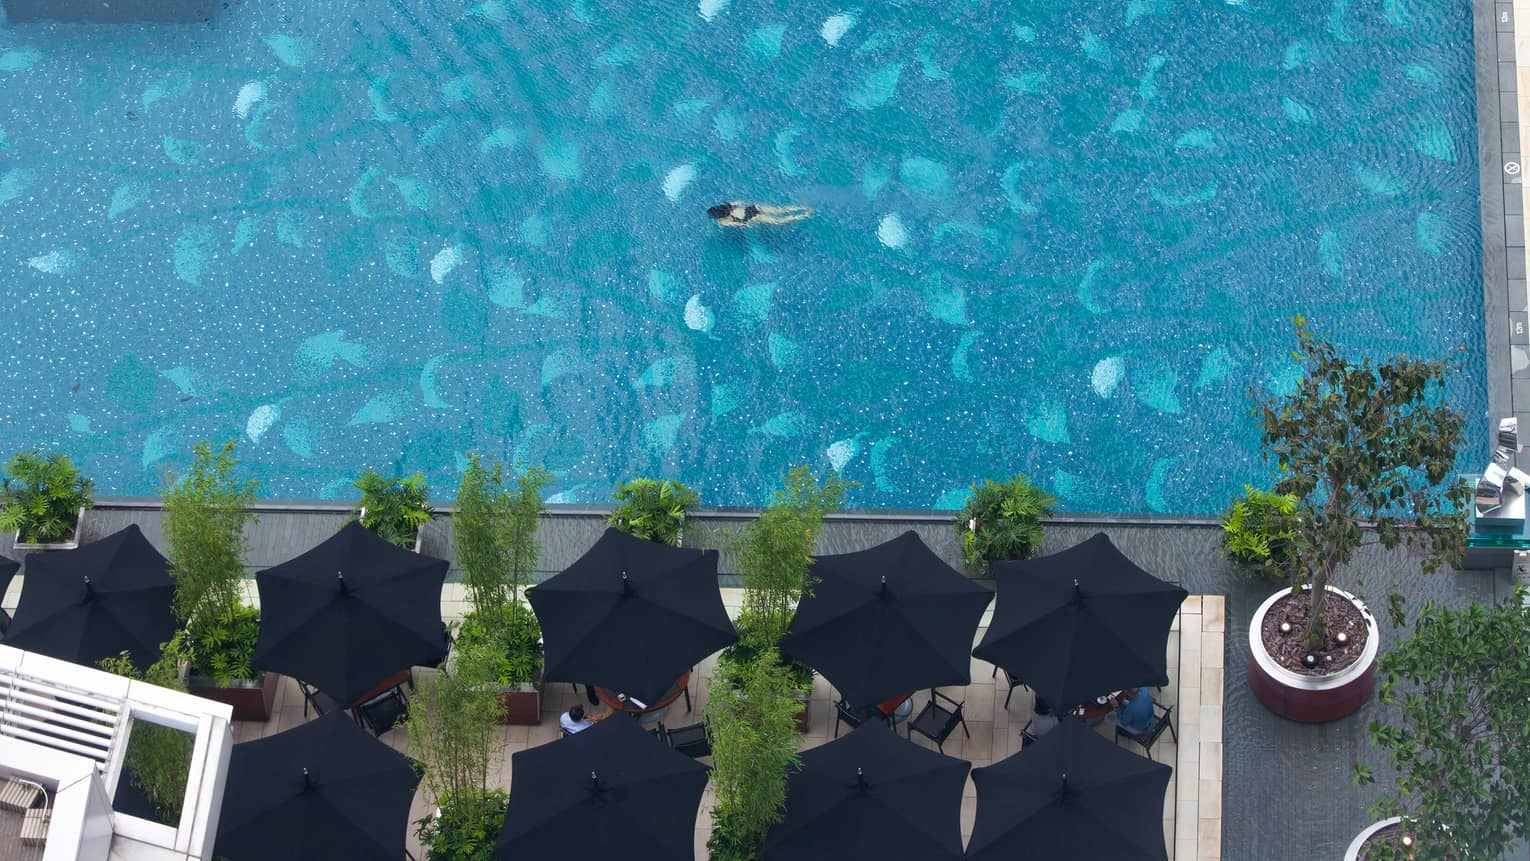 Aerial view of woman swimming underwater in large blue swimming pool, four black patio umbrellas on deck